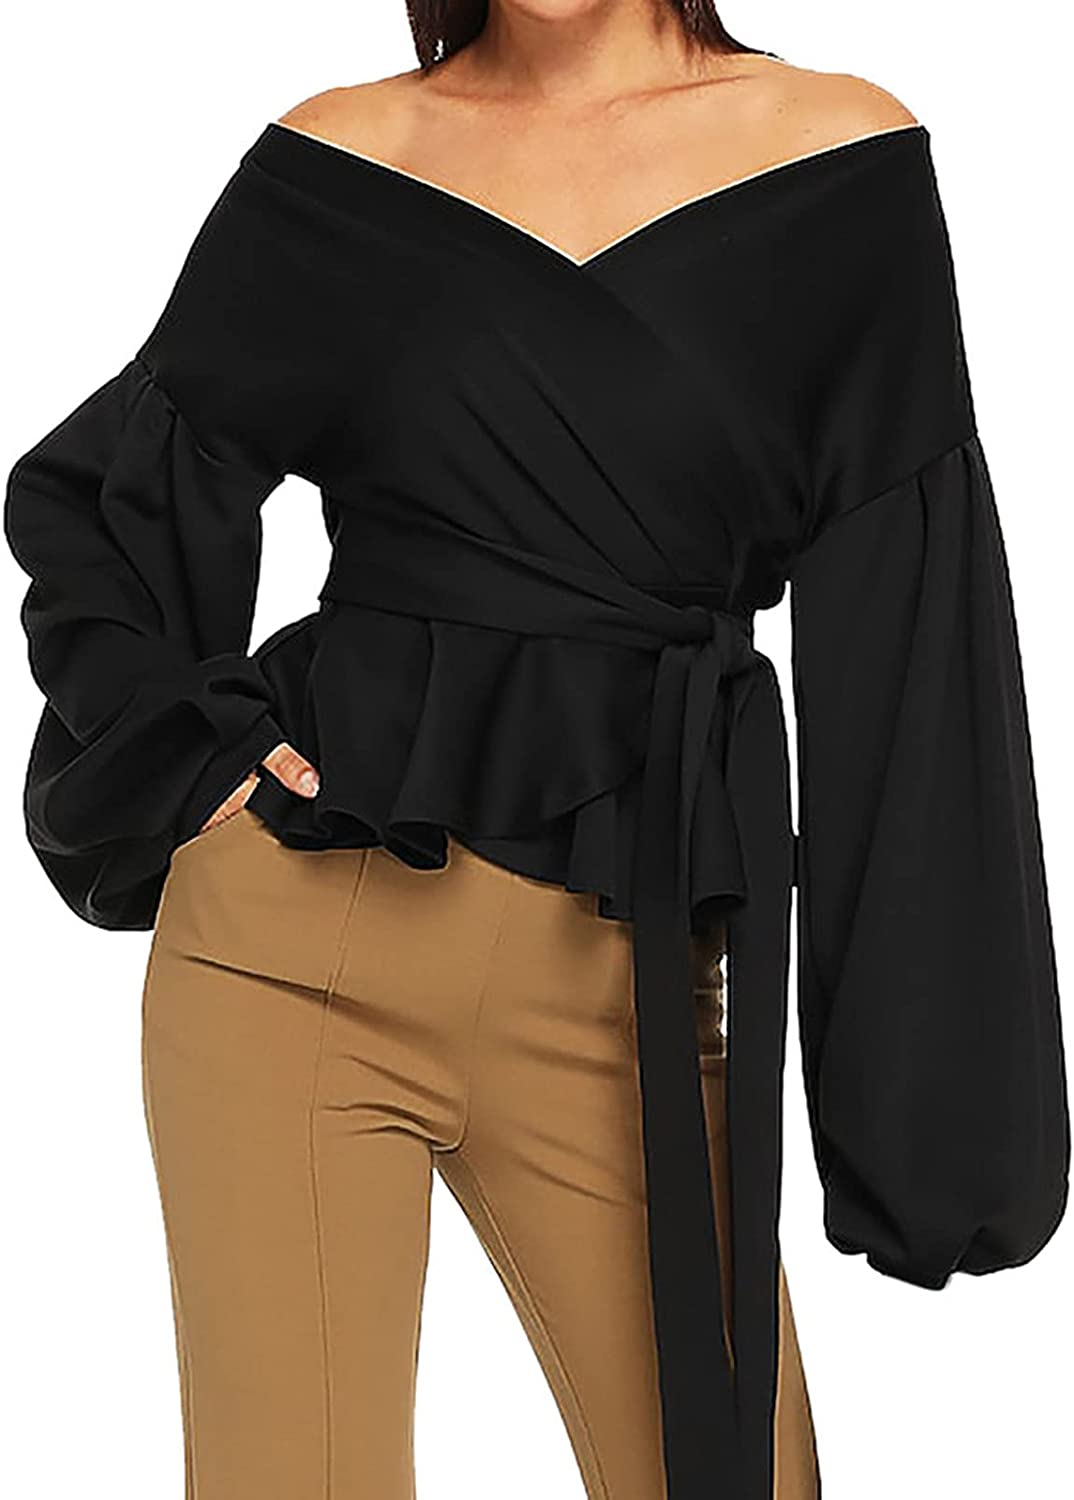 Blouses for Women Lantern Sleeve Bow Belt Bandage Tops Low-Cut Solid Color Sexy Fashion Elegant Pullover Shirts